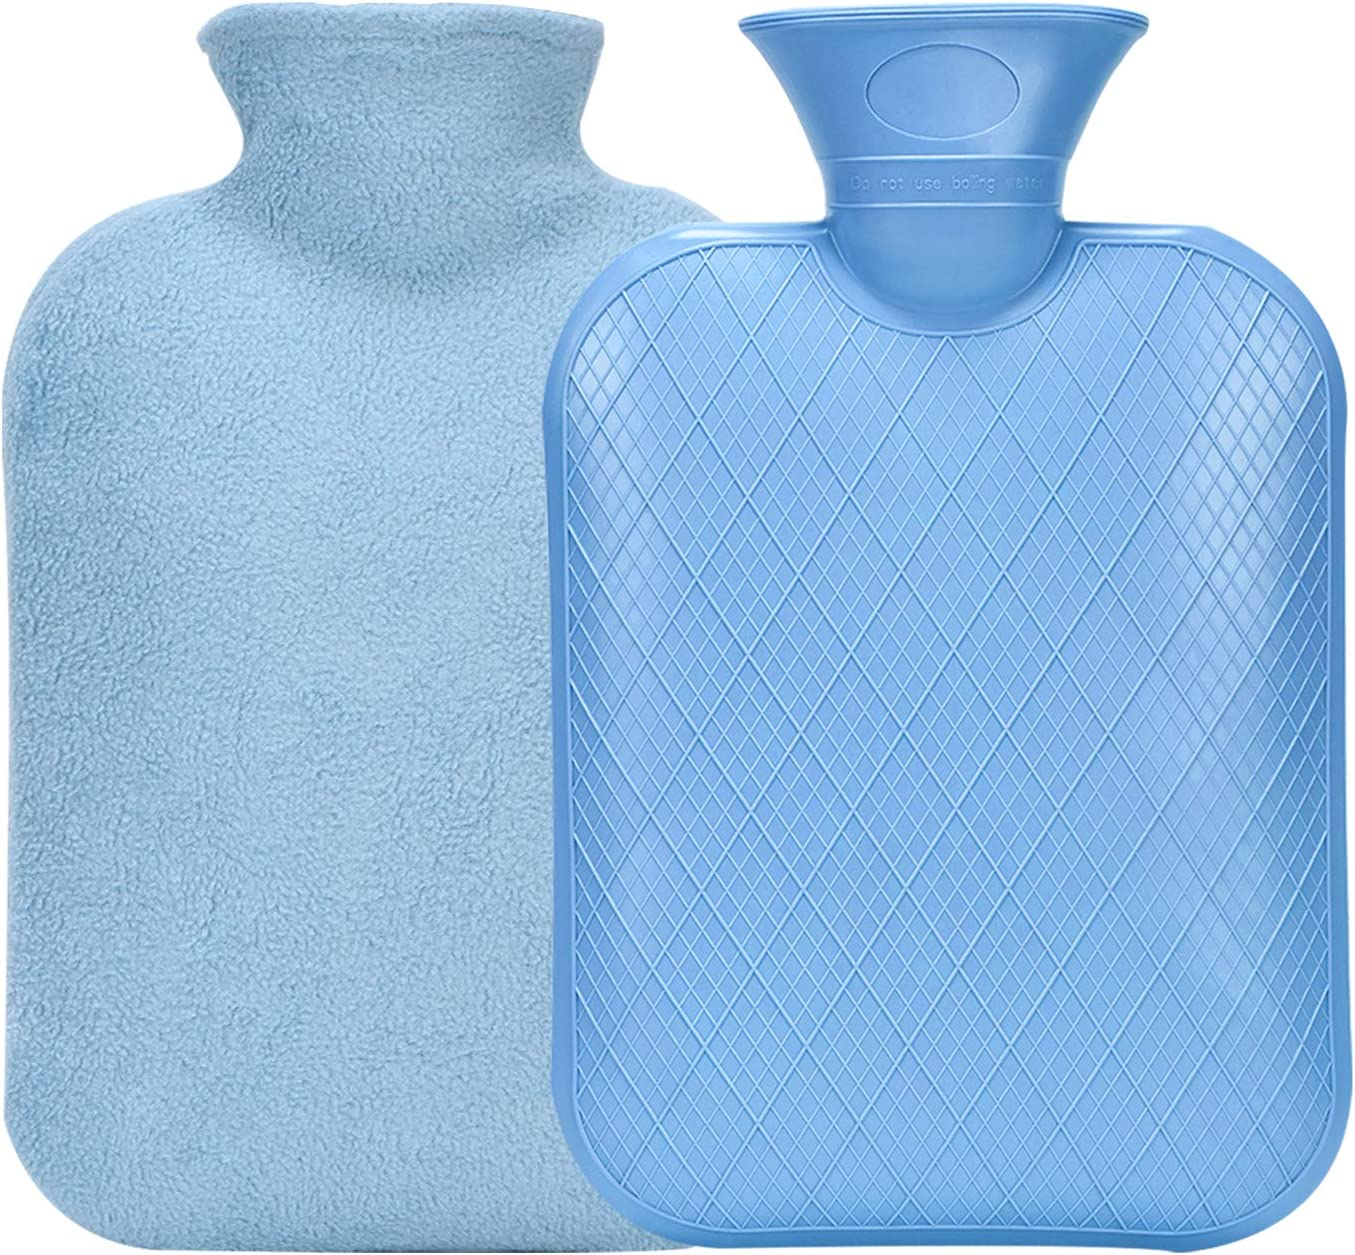 BYXAS Classic Rubber Hot Water Bottle - 2 Liter Hot Water Bag for Pain Relief Therapy Tools Body Warmer with Soft Flannel Cover – Blue